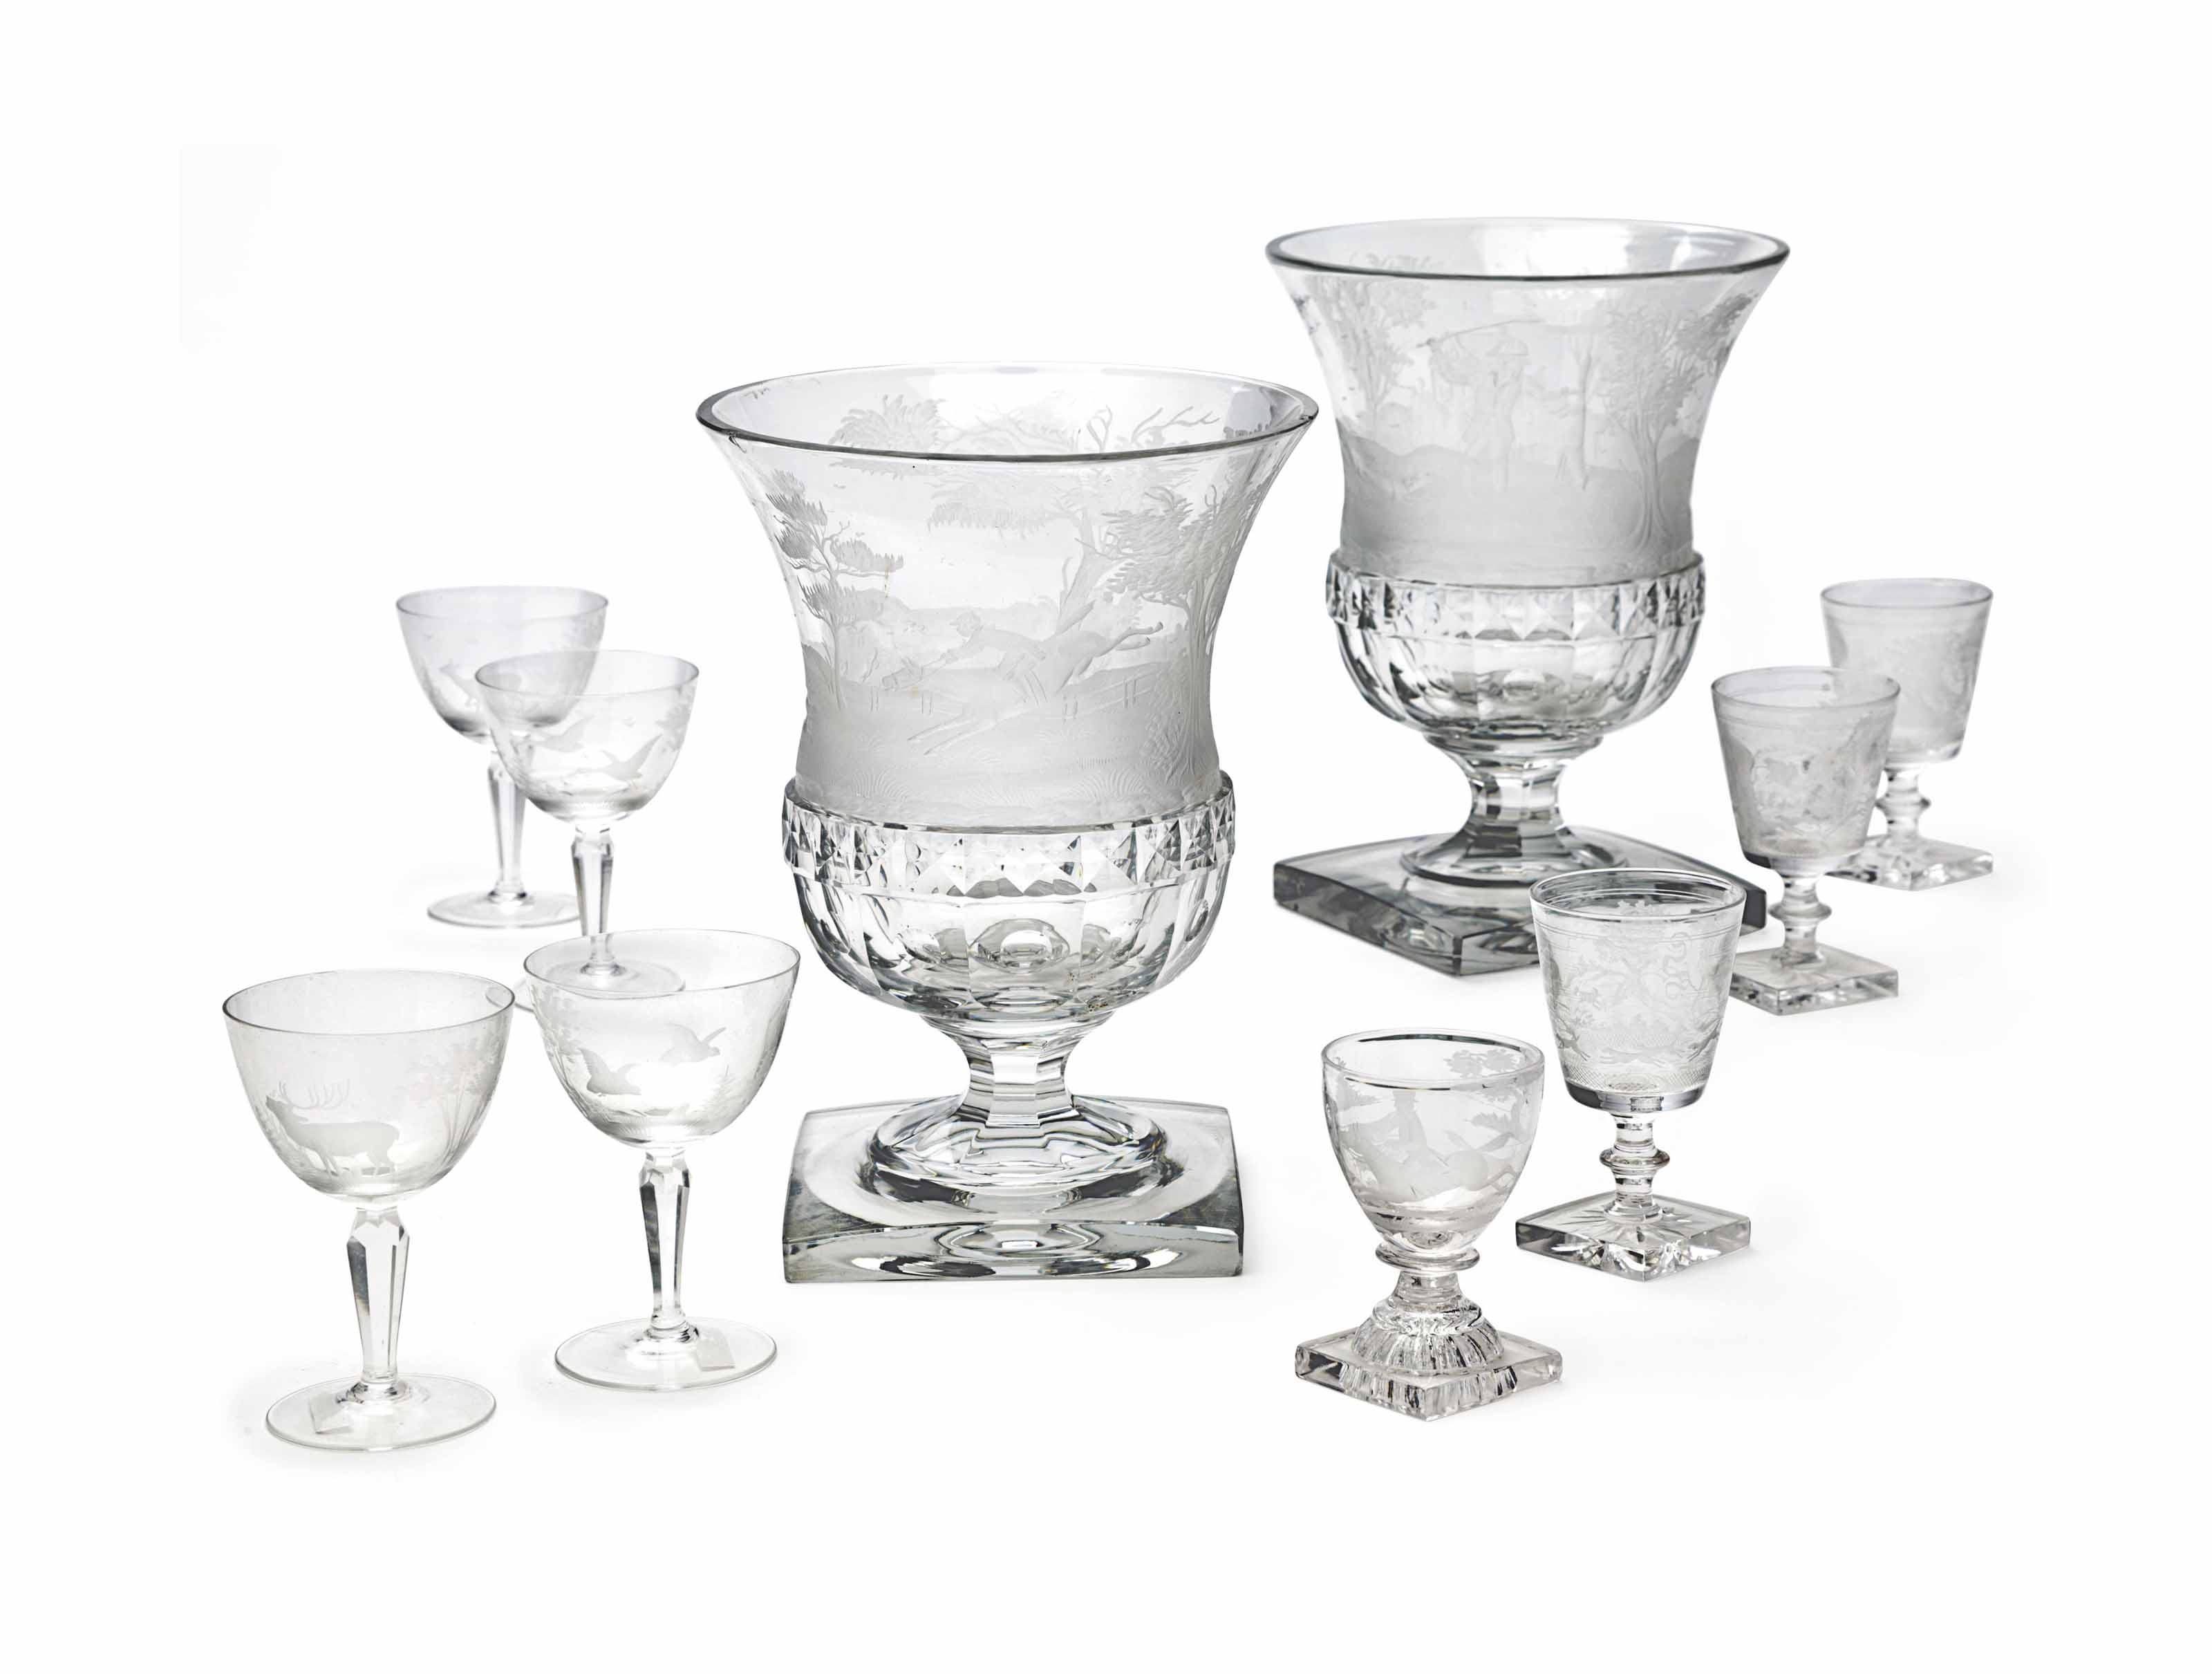 AN ASSEMBLED GROUP OF ENGLISH AND CONTINENTAL ETCHED GLASS DRINK WARE ACCESSORIES PERTAINING TO HUNTING